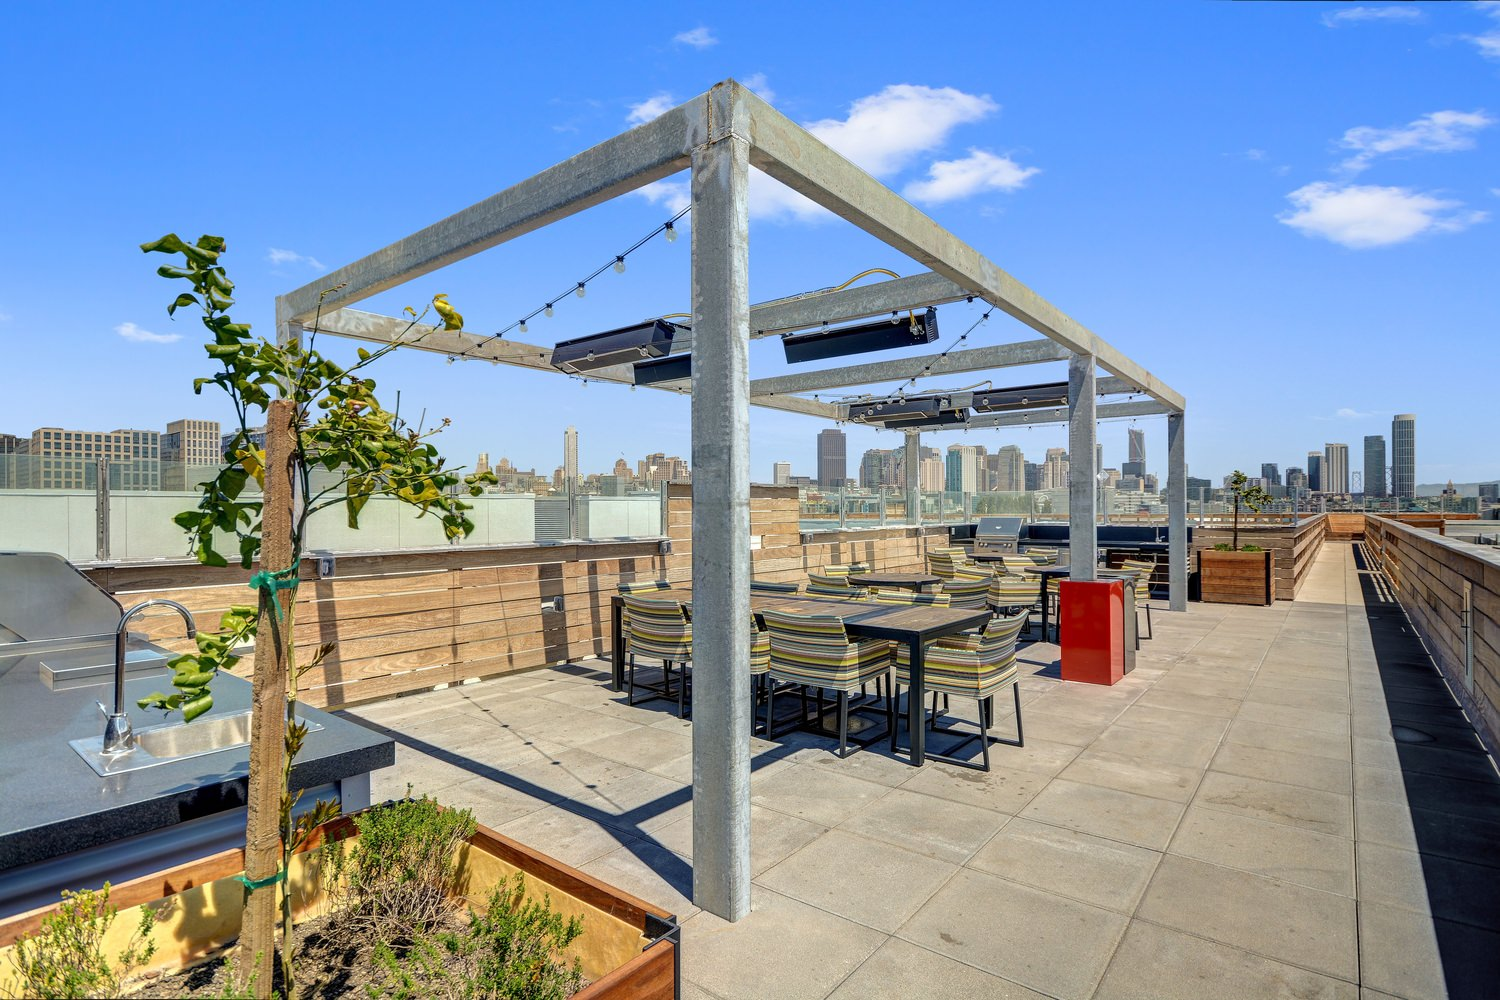 A rooftop patio with tables and chairs setup beneath a pergola strung with lights.